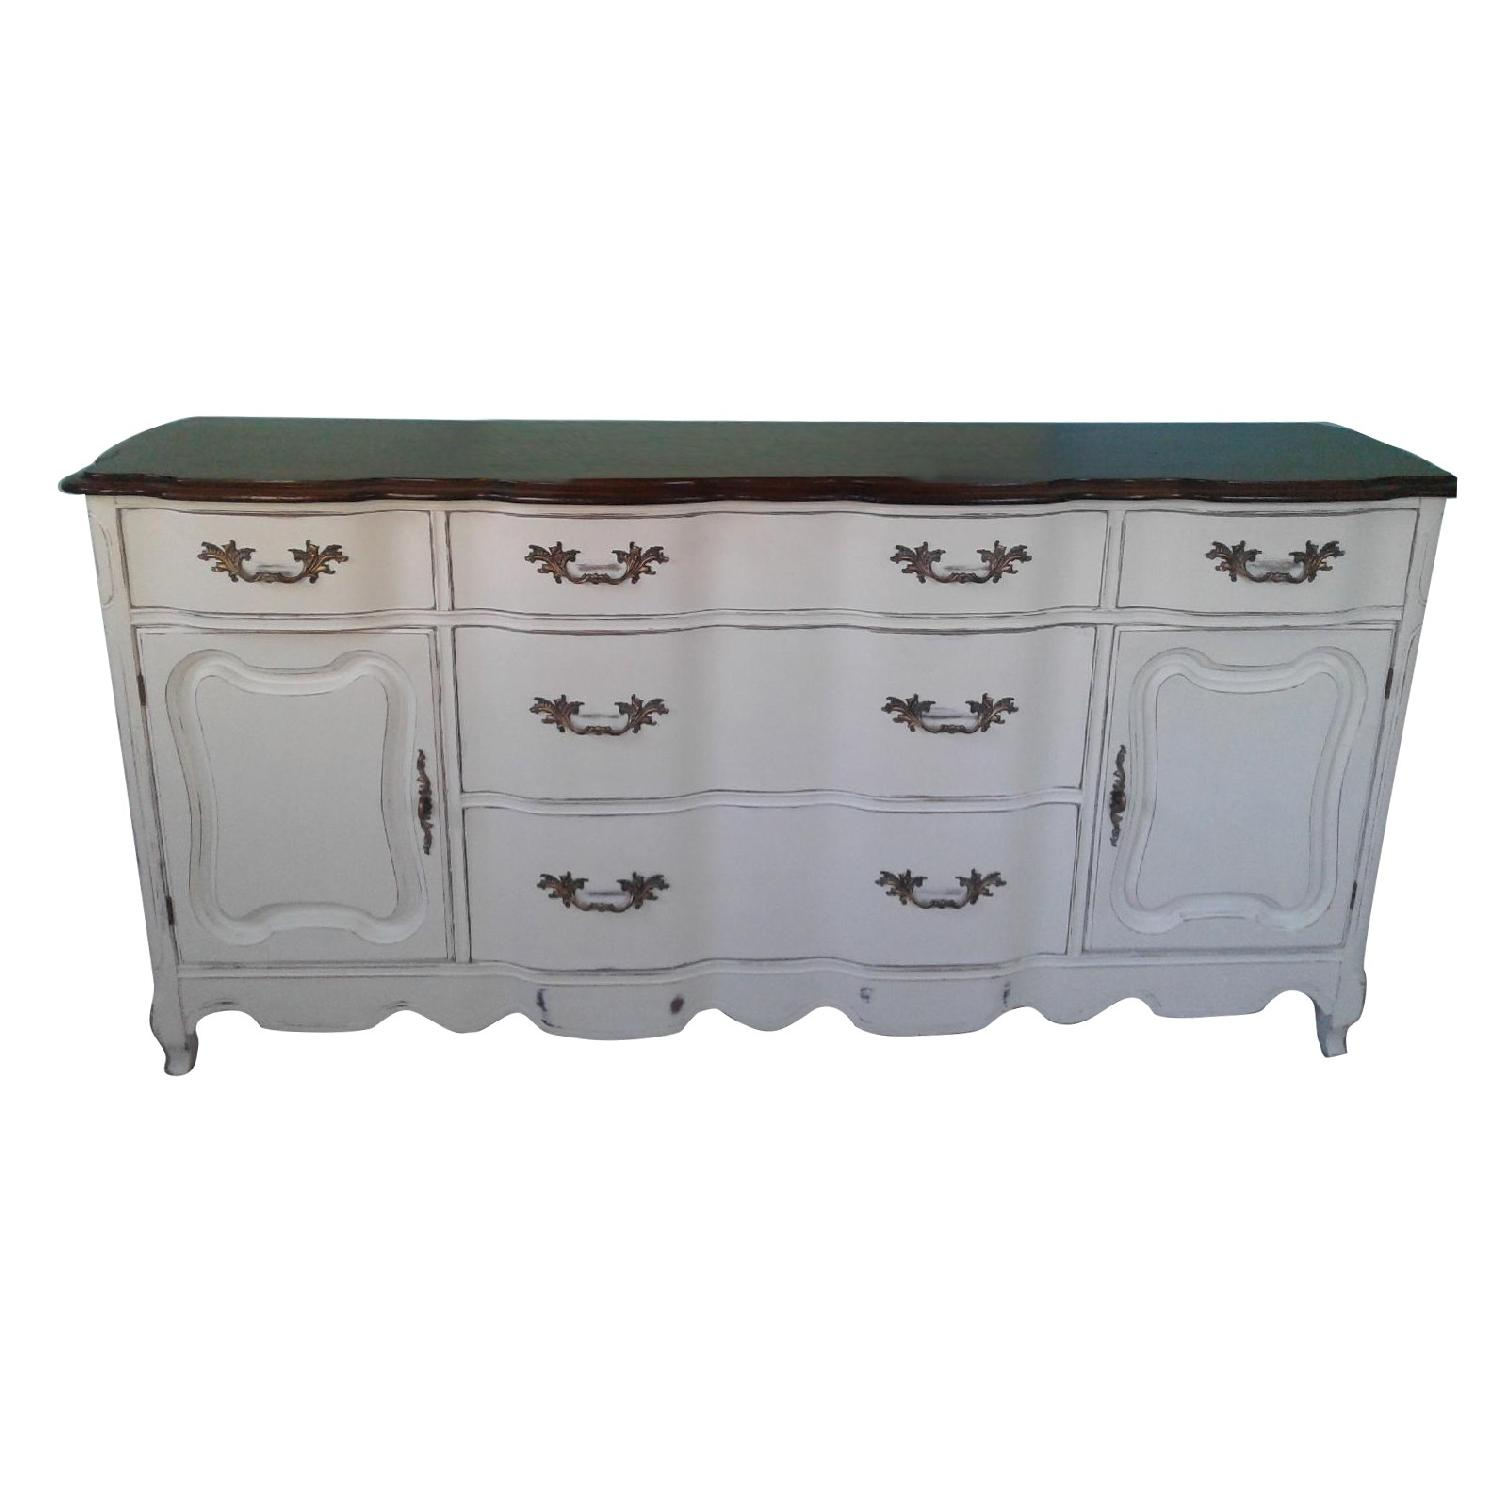 French Country Farm Sideboard/Dresser